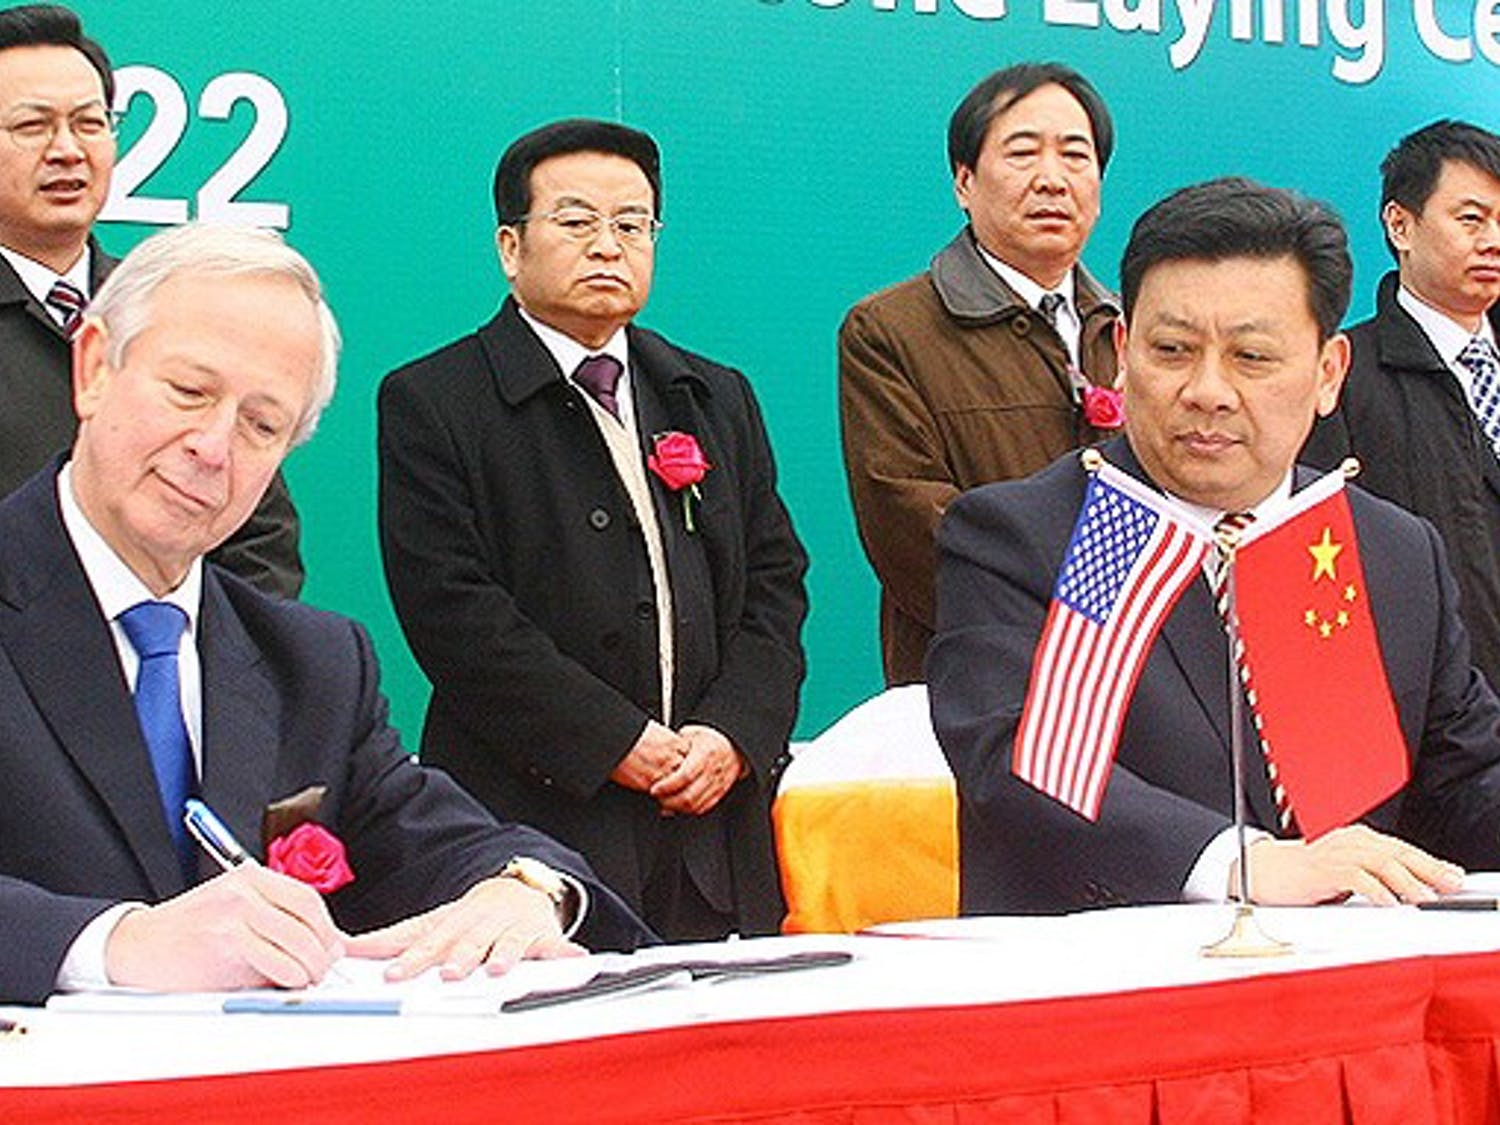 President Richard Brodhead signs an agreement finalizing Duke's expansion plans in Kunshan, China Jan. 22. With the agreement, the University enters into a partnership with Shanghai Jiao Tong University, which is accused of being involved in a series of cyberattacks on Google last month.